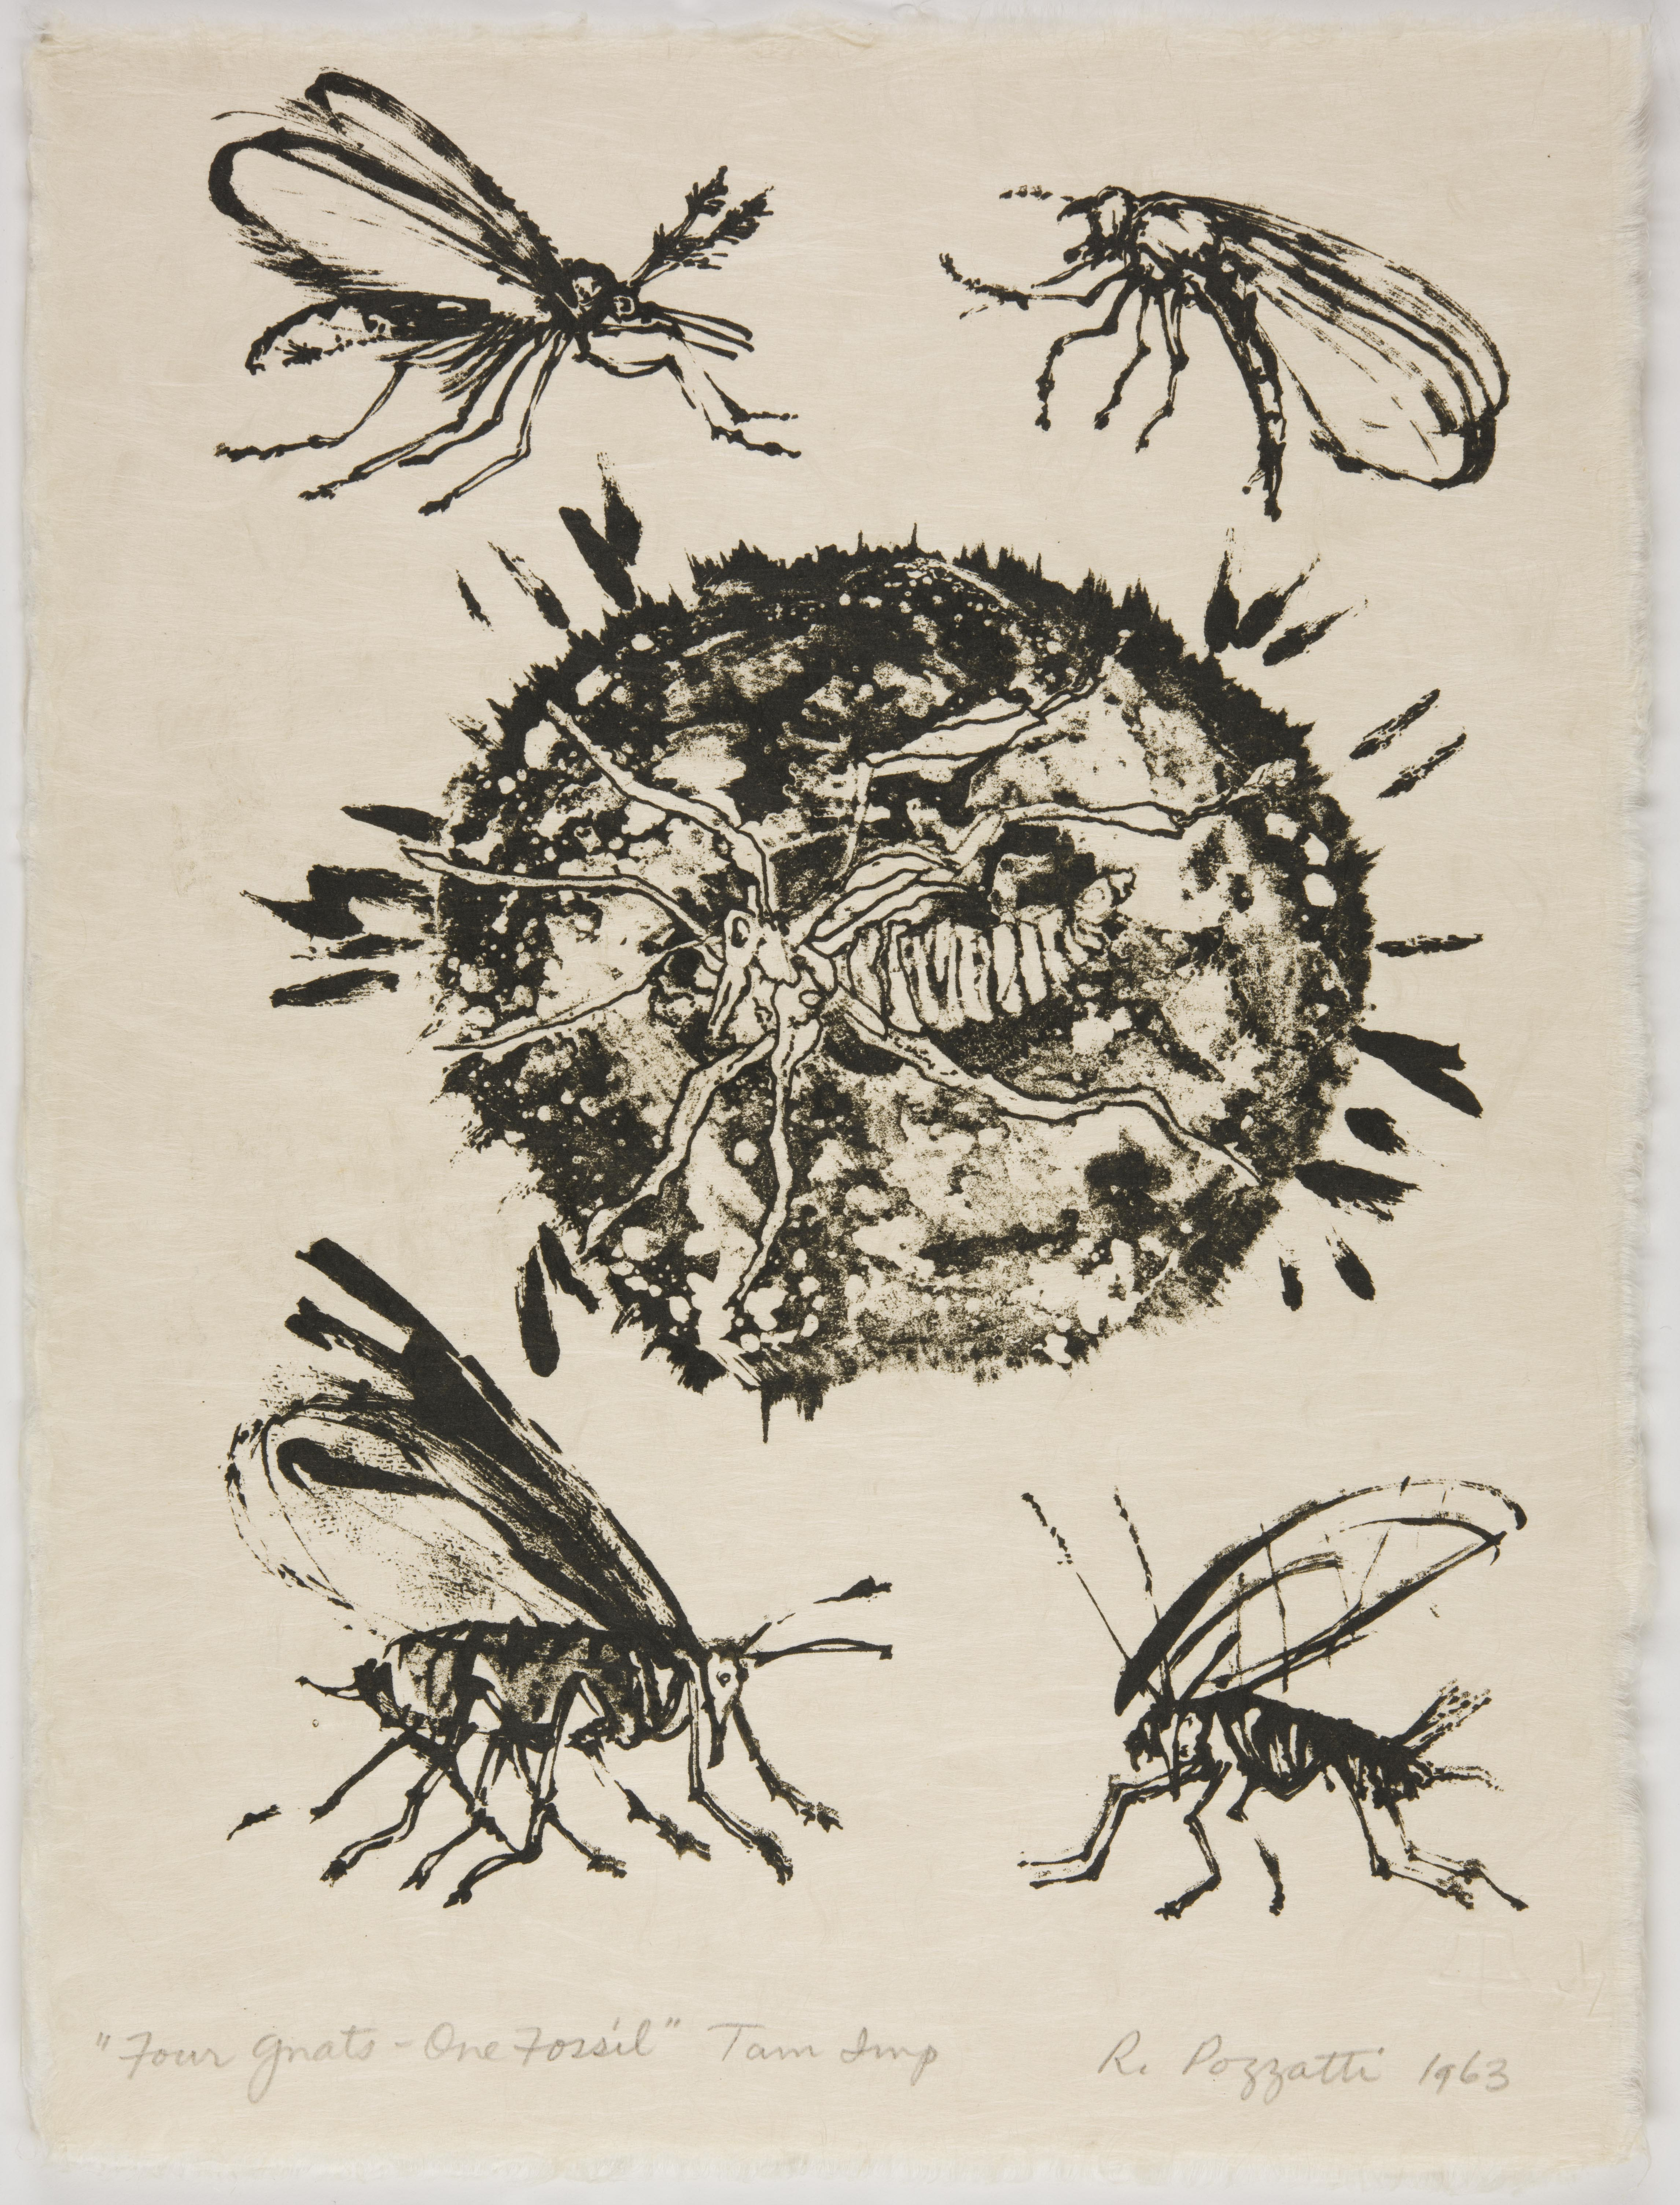 Rudy Pozzatti, Four Gnats, One Fossil (VI), March 21-25, 1963